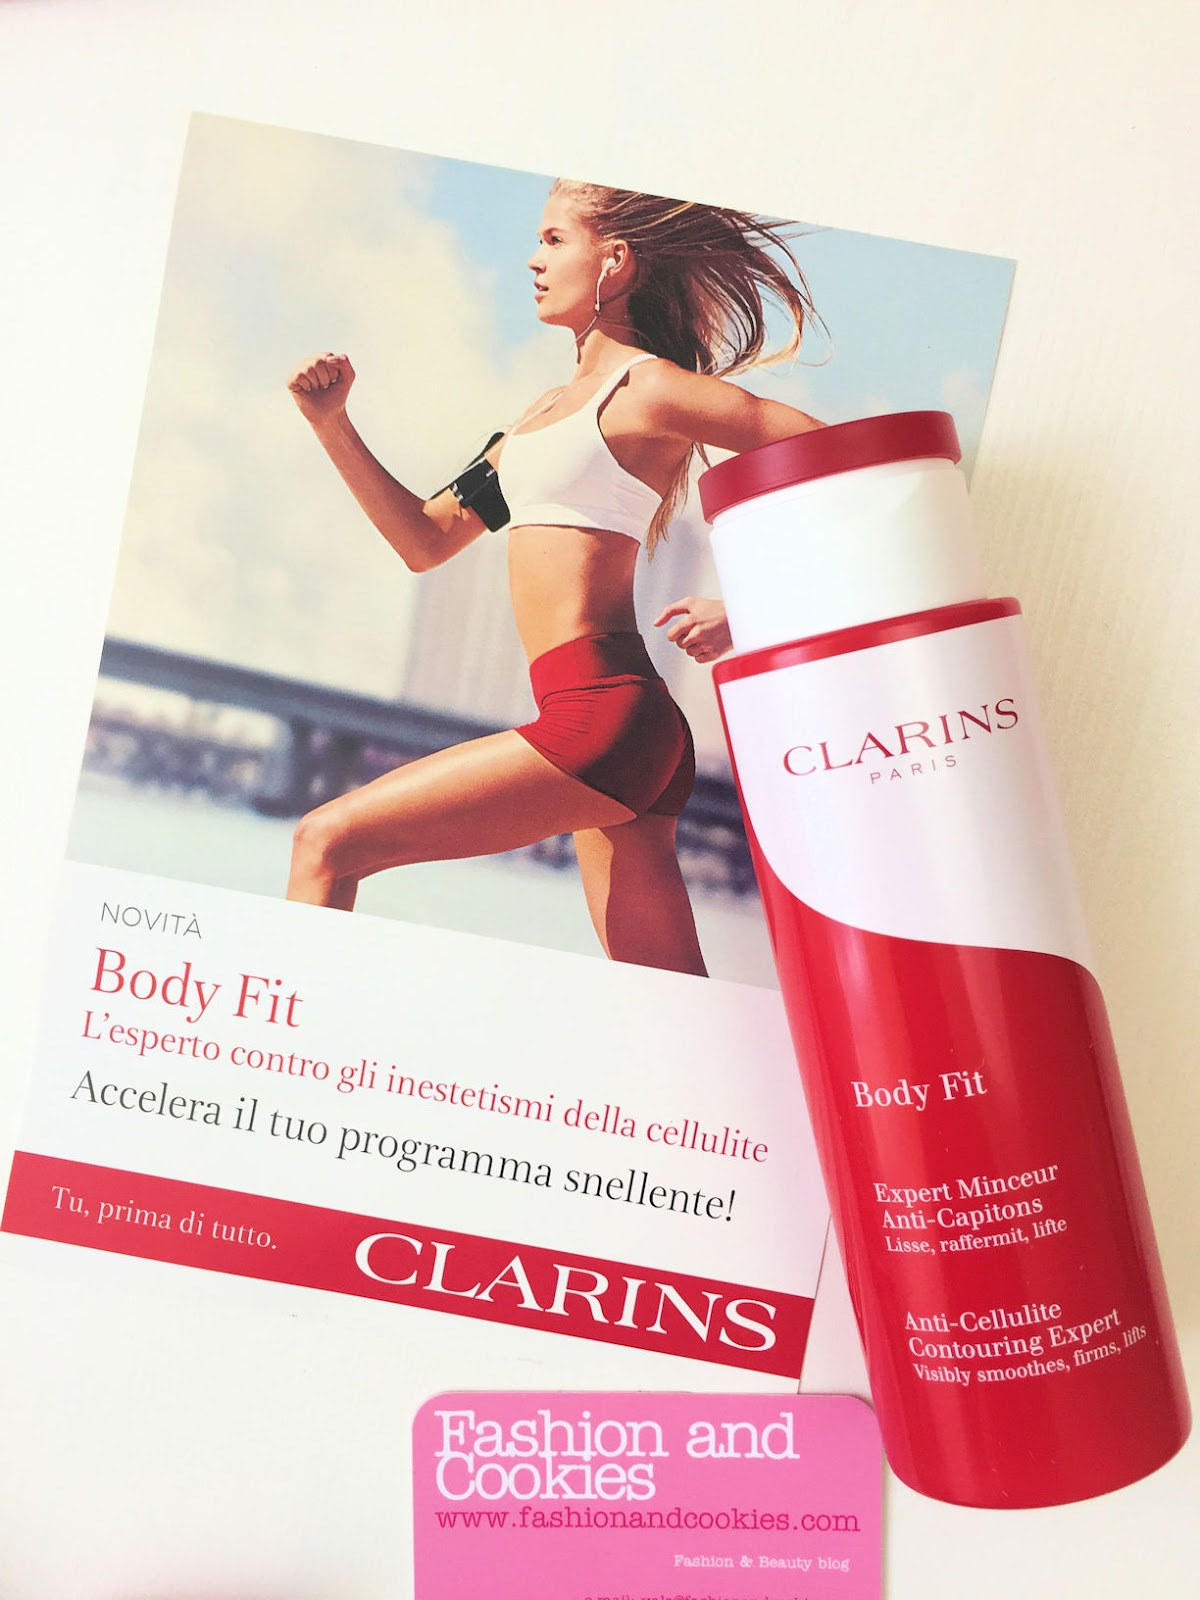 Come snellire rapidamente, review Clarins Body Fit anticellulite su Fashion and Cookies beauty blog, beauty blogger